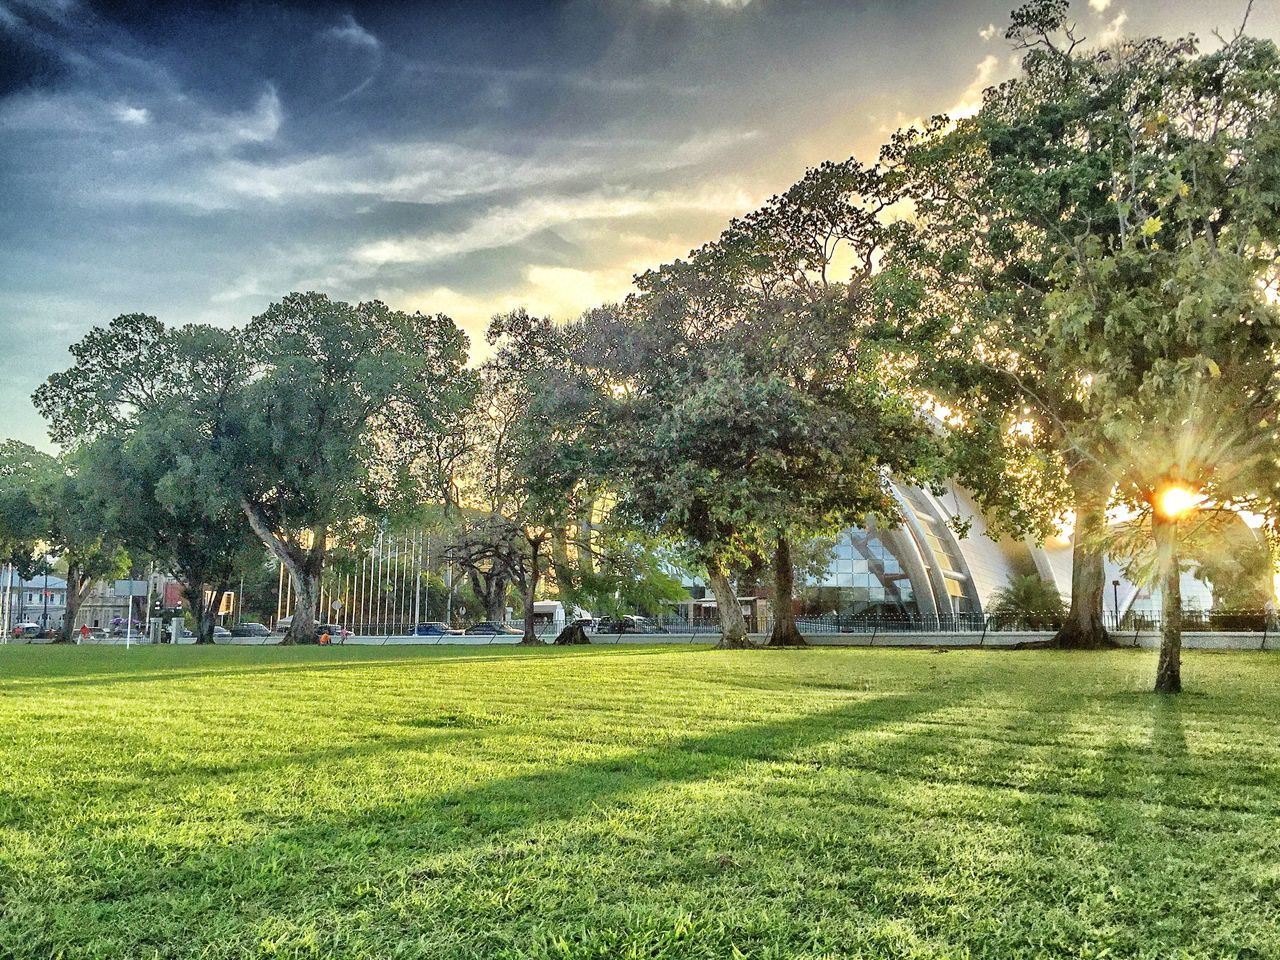 tree, grass, green color, nature, growth, sky, beauty in nature, park - man made space, field, scenics, sunlight, landscape, day, tranquil scene, outdoors, tranquility, large group of people, real people, branch, people